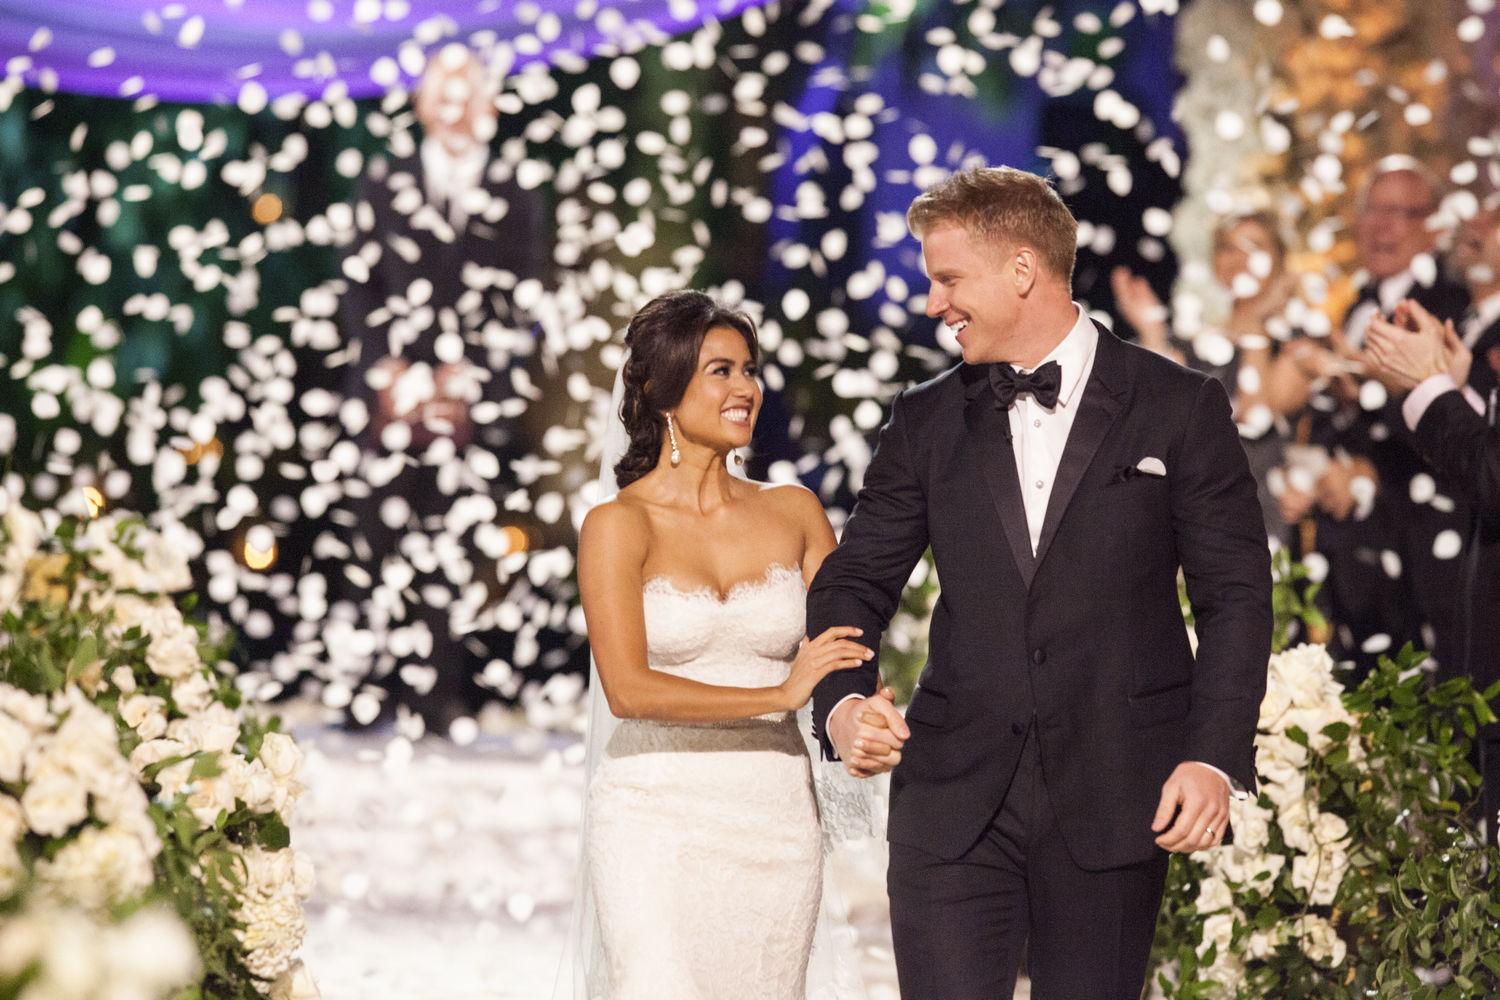 wedding-abc-bachelor-sean-lowe-catherine-guidici-johnandjoseph156.jpg